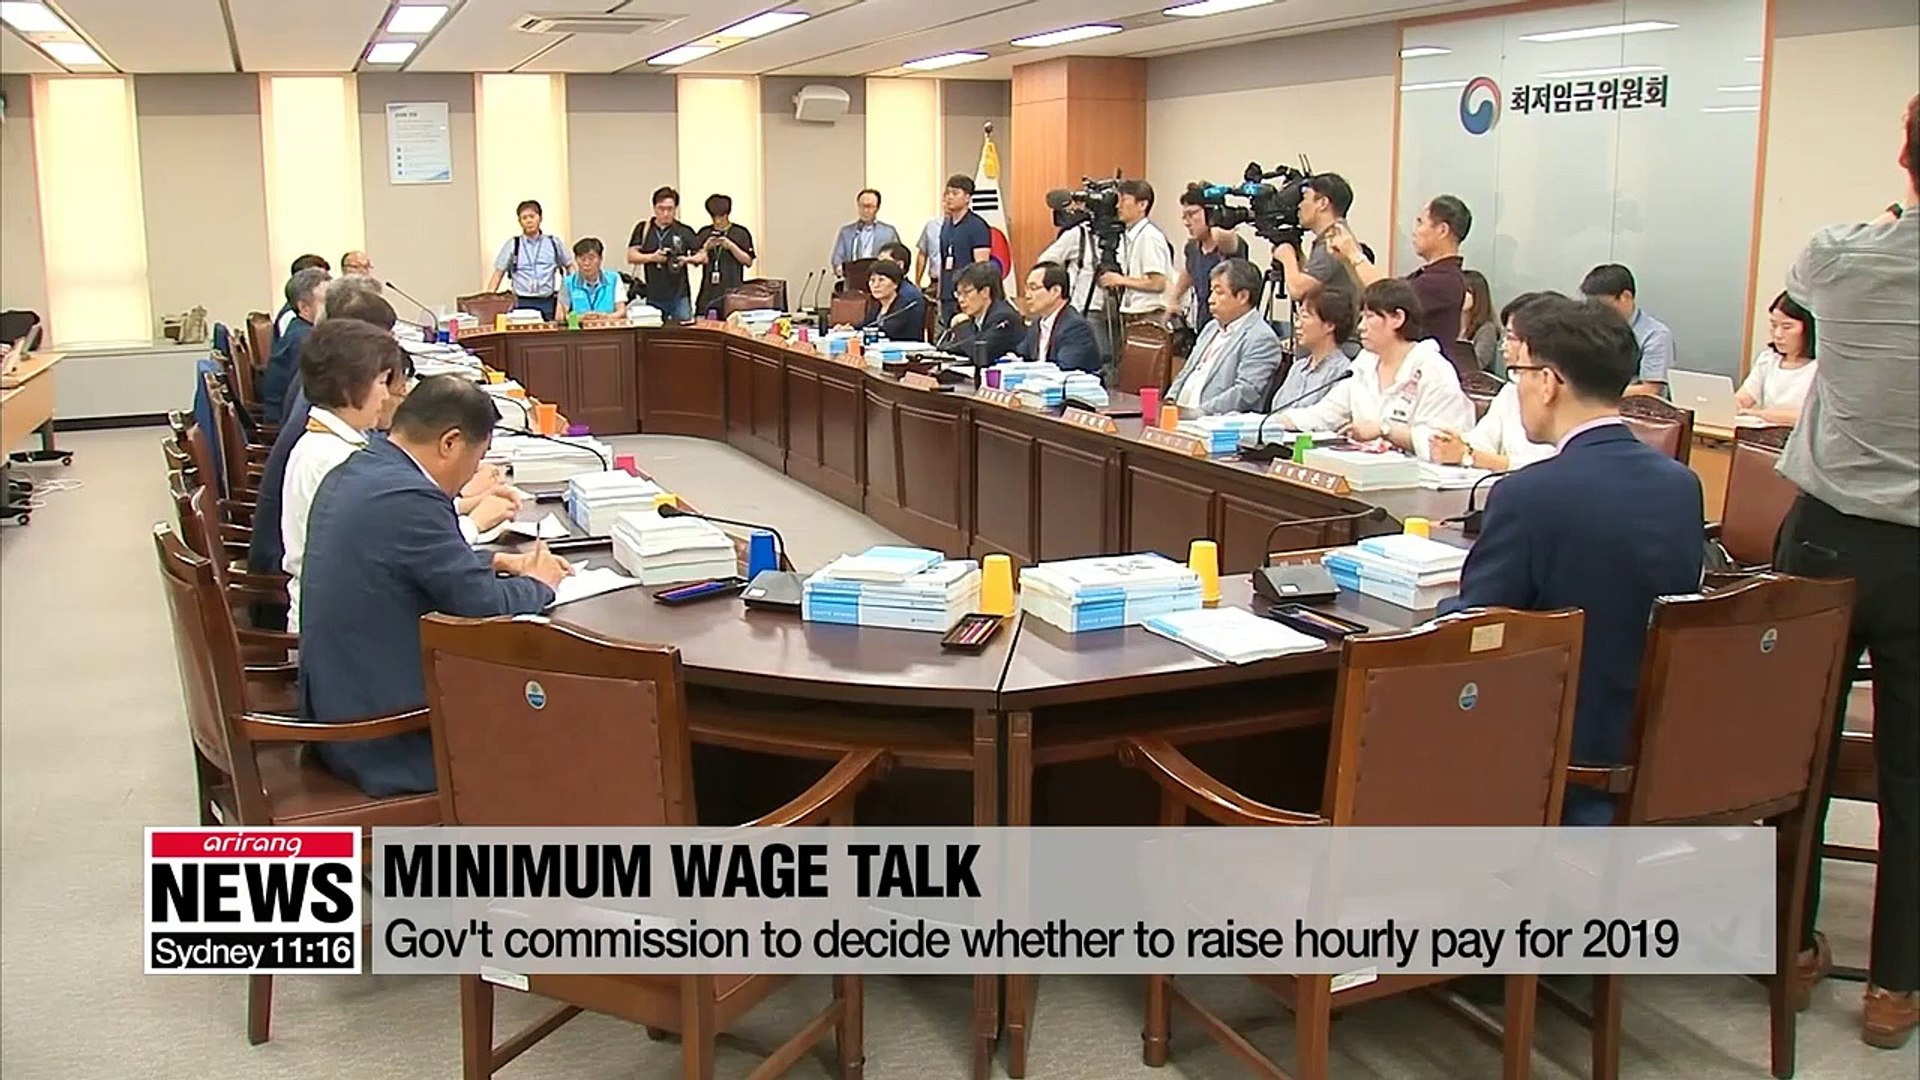 Committee expected to raise 2019 minimum wage